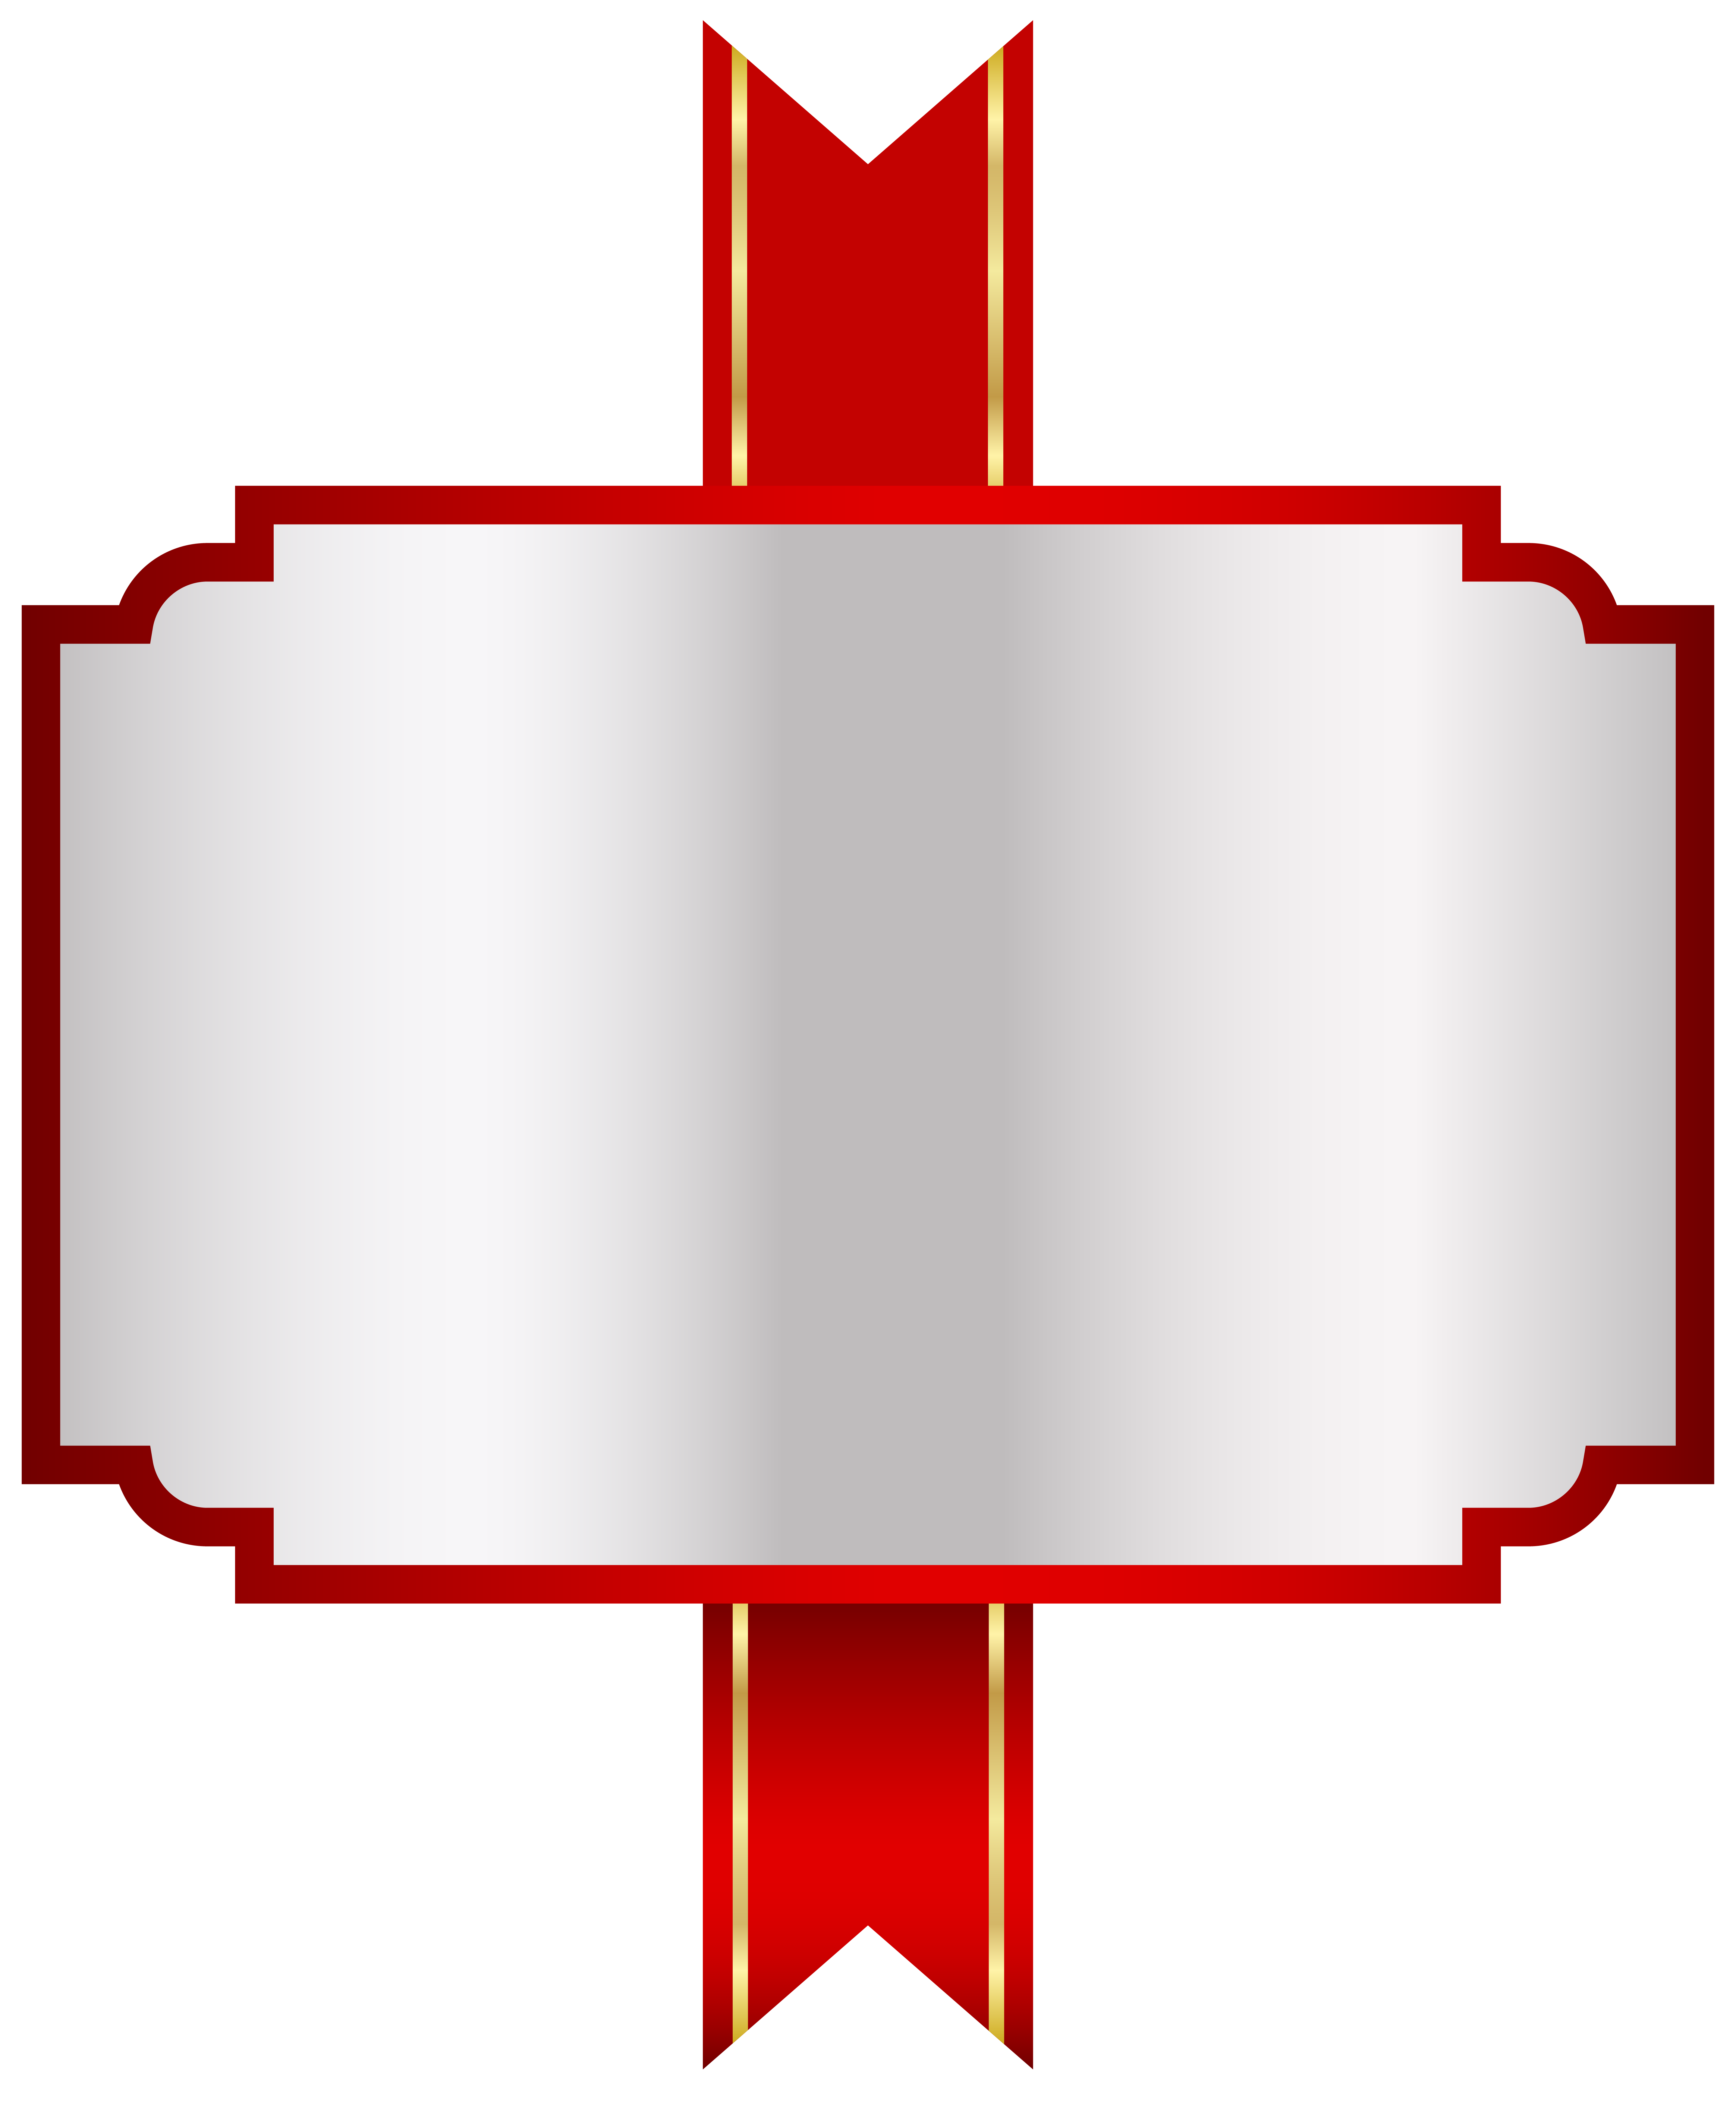 White png clip art. Label clipart red